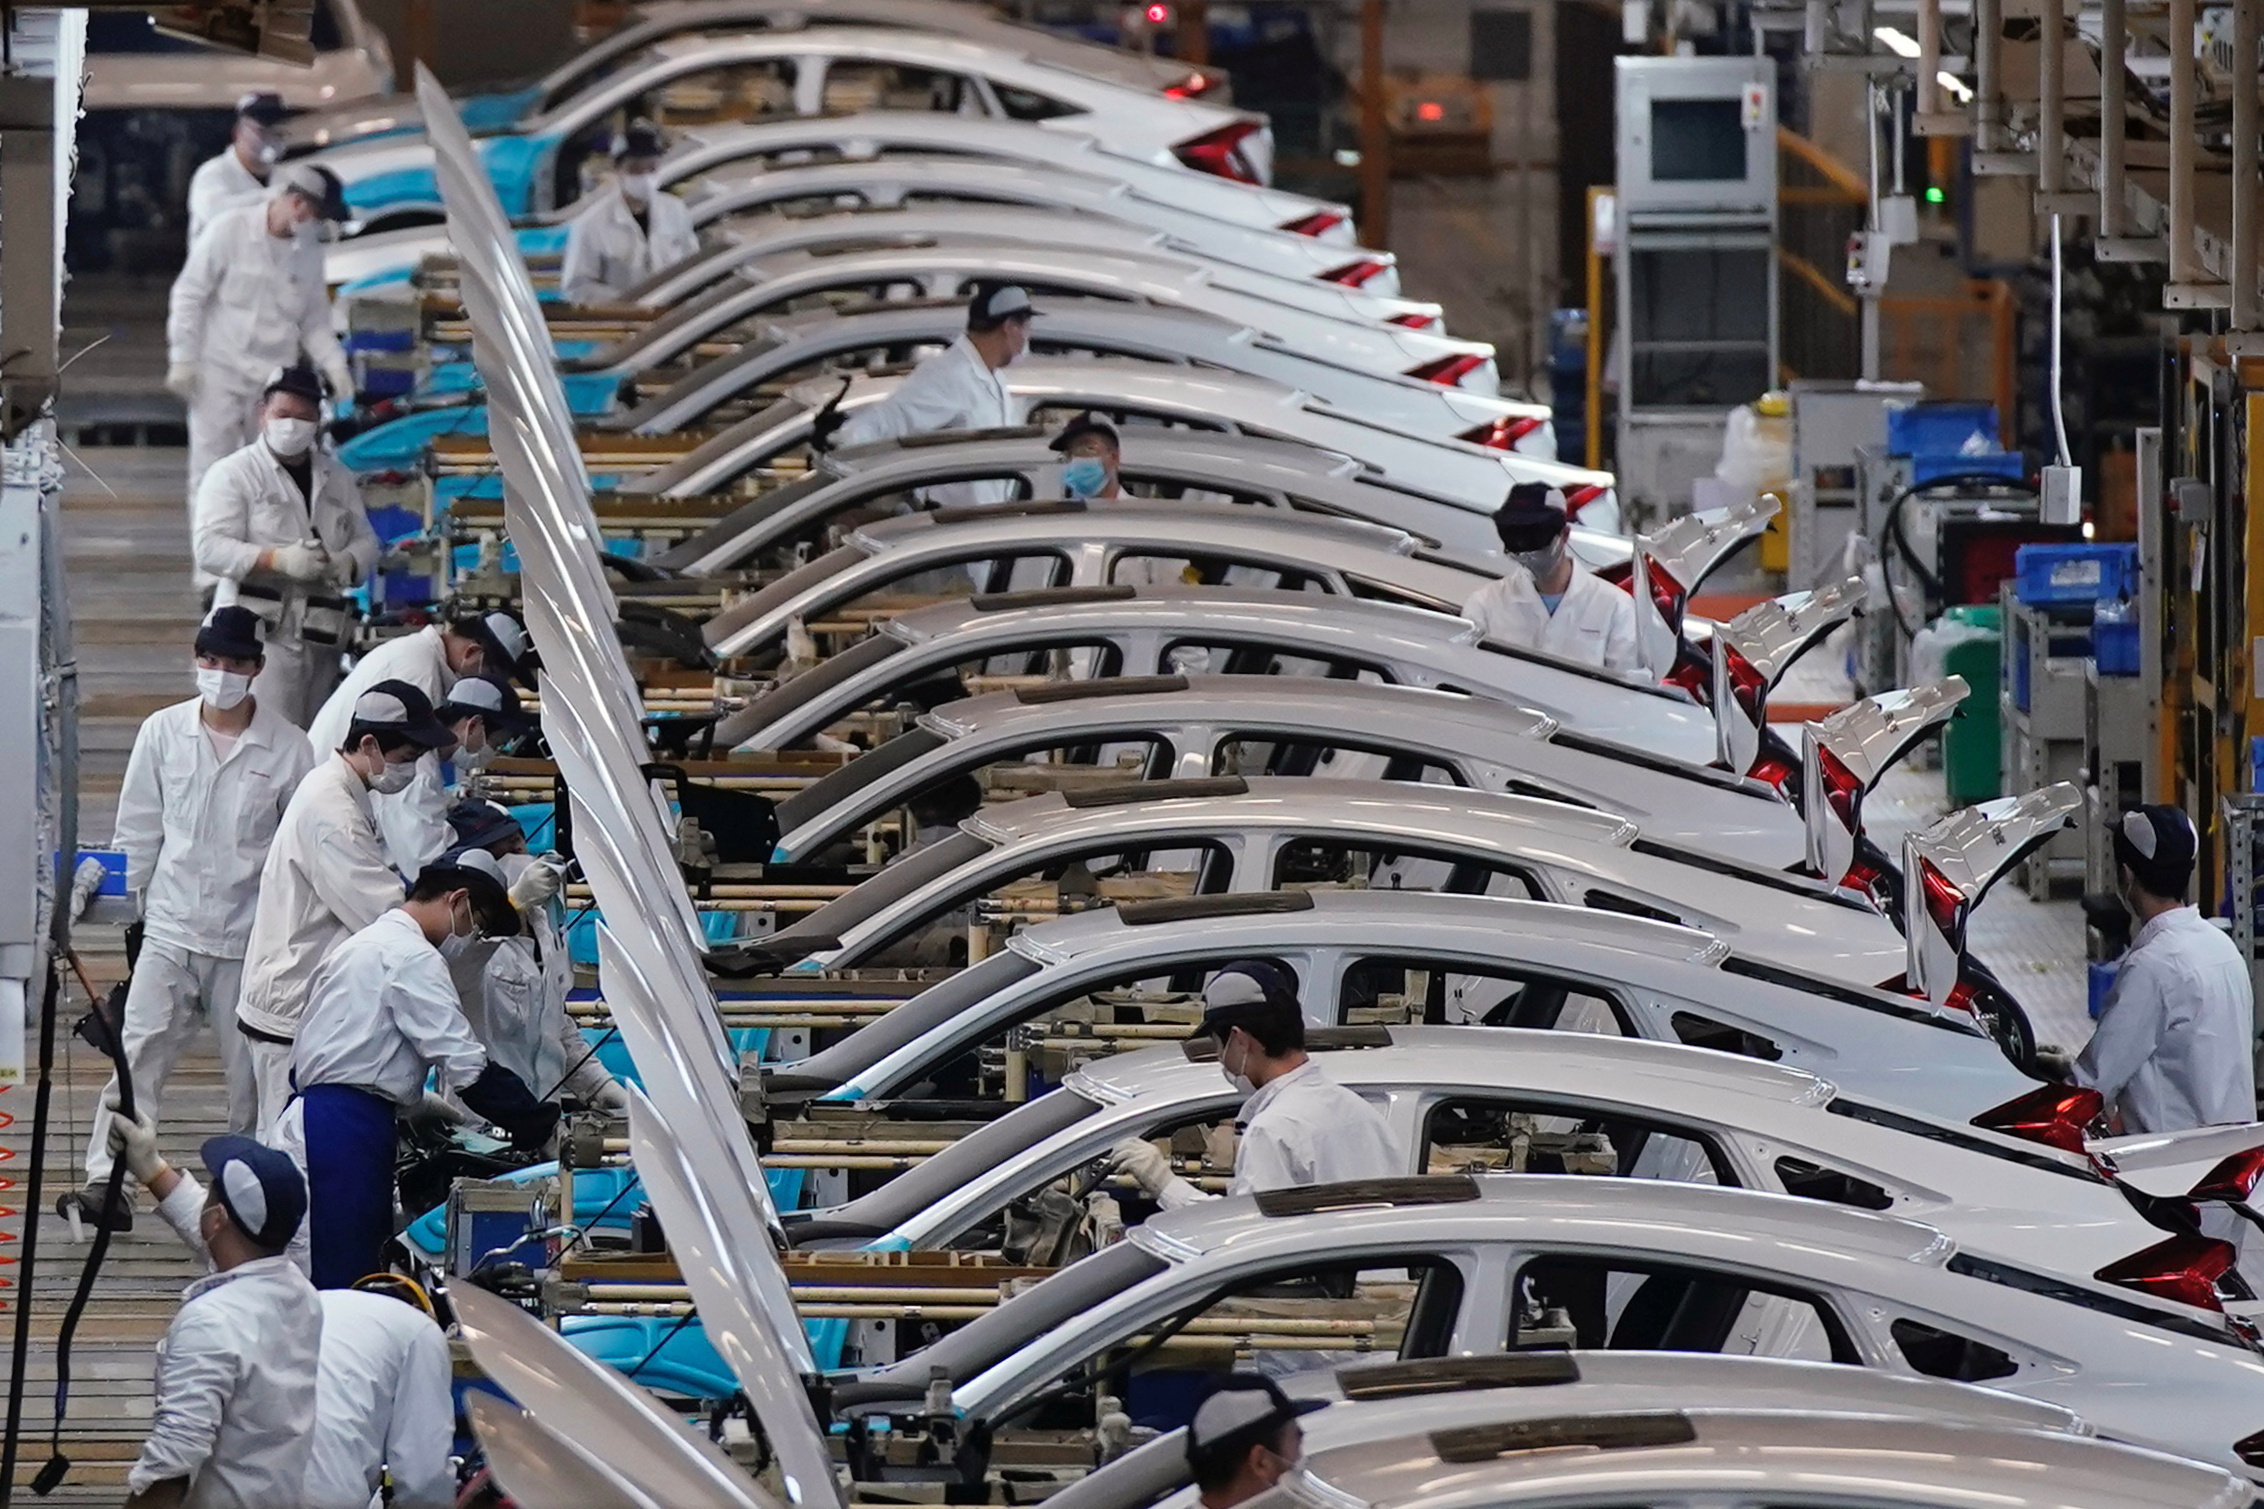 China's economic prospects call for stimulus